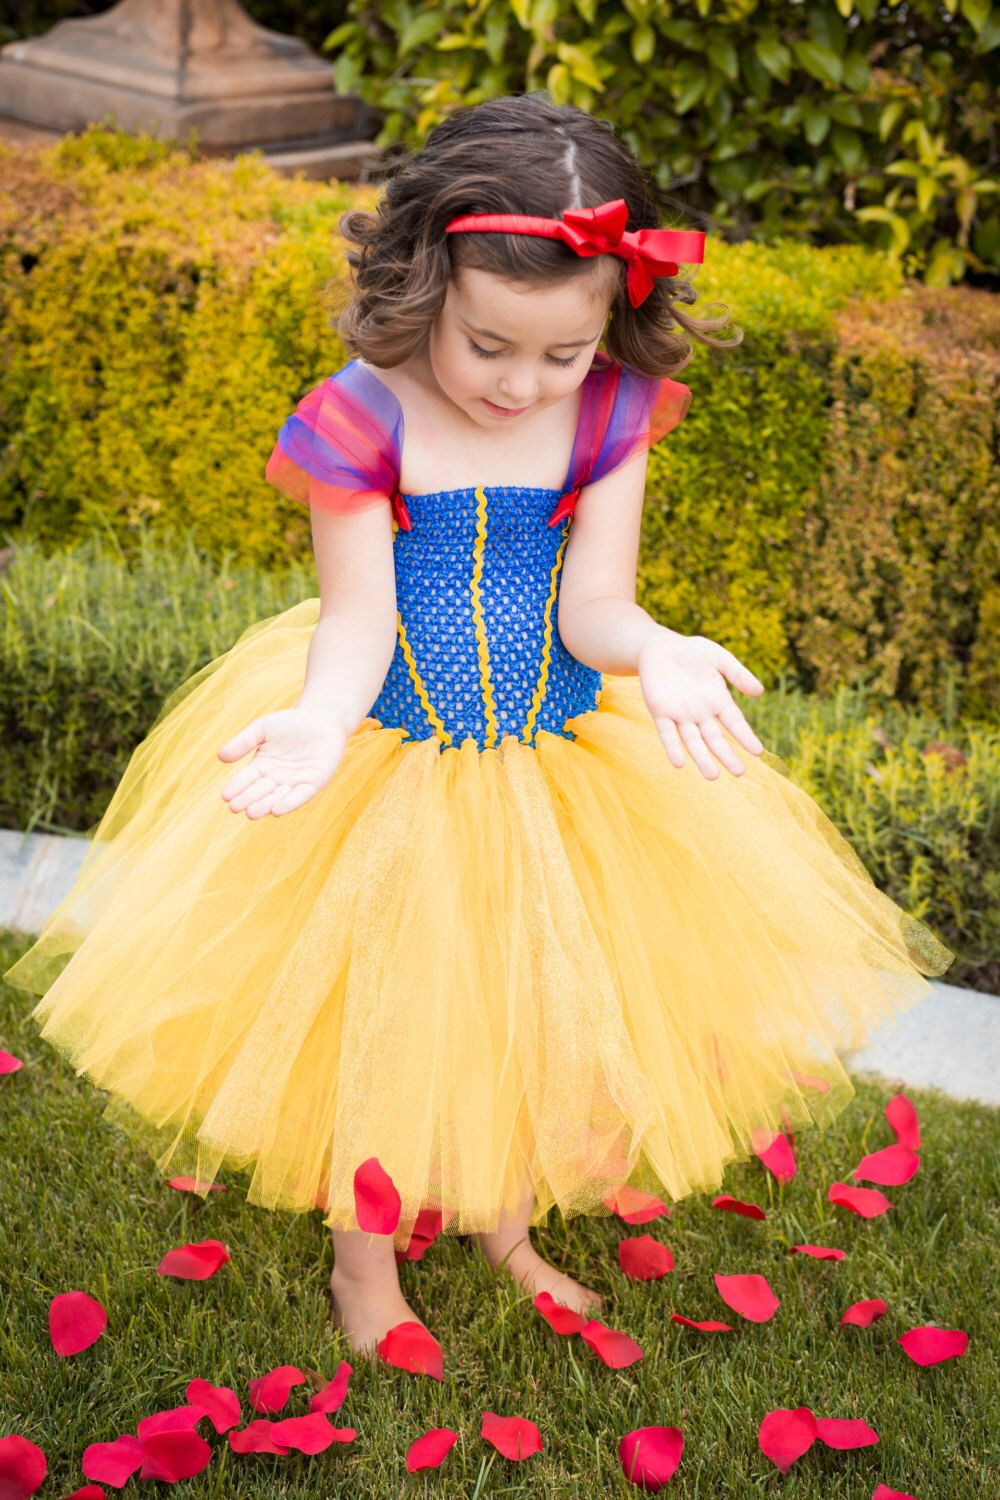 Snow White Dress by OhMyTutuCuteByDeanna on Etsy https